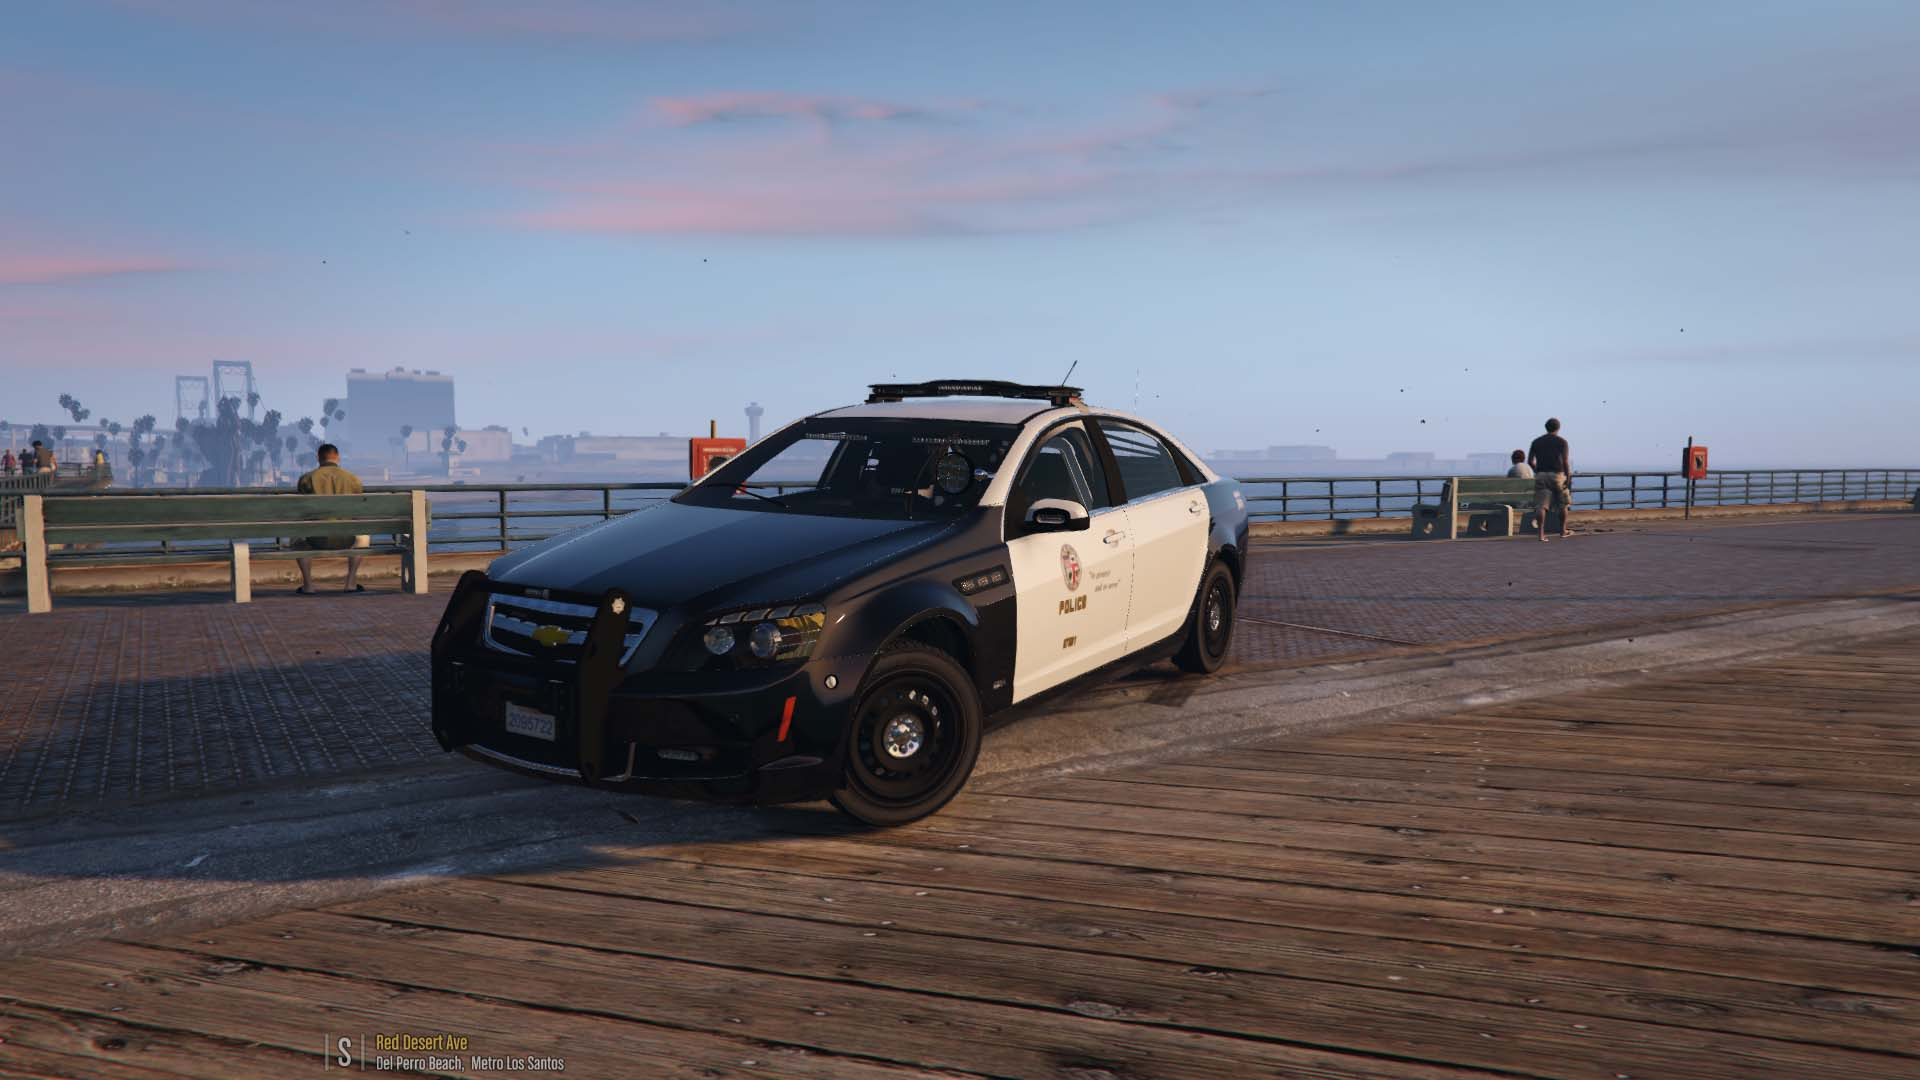 LAPD Skin for Caprice PPV - GTA5-Mods com